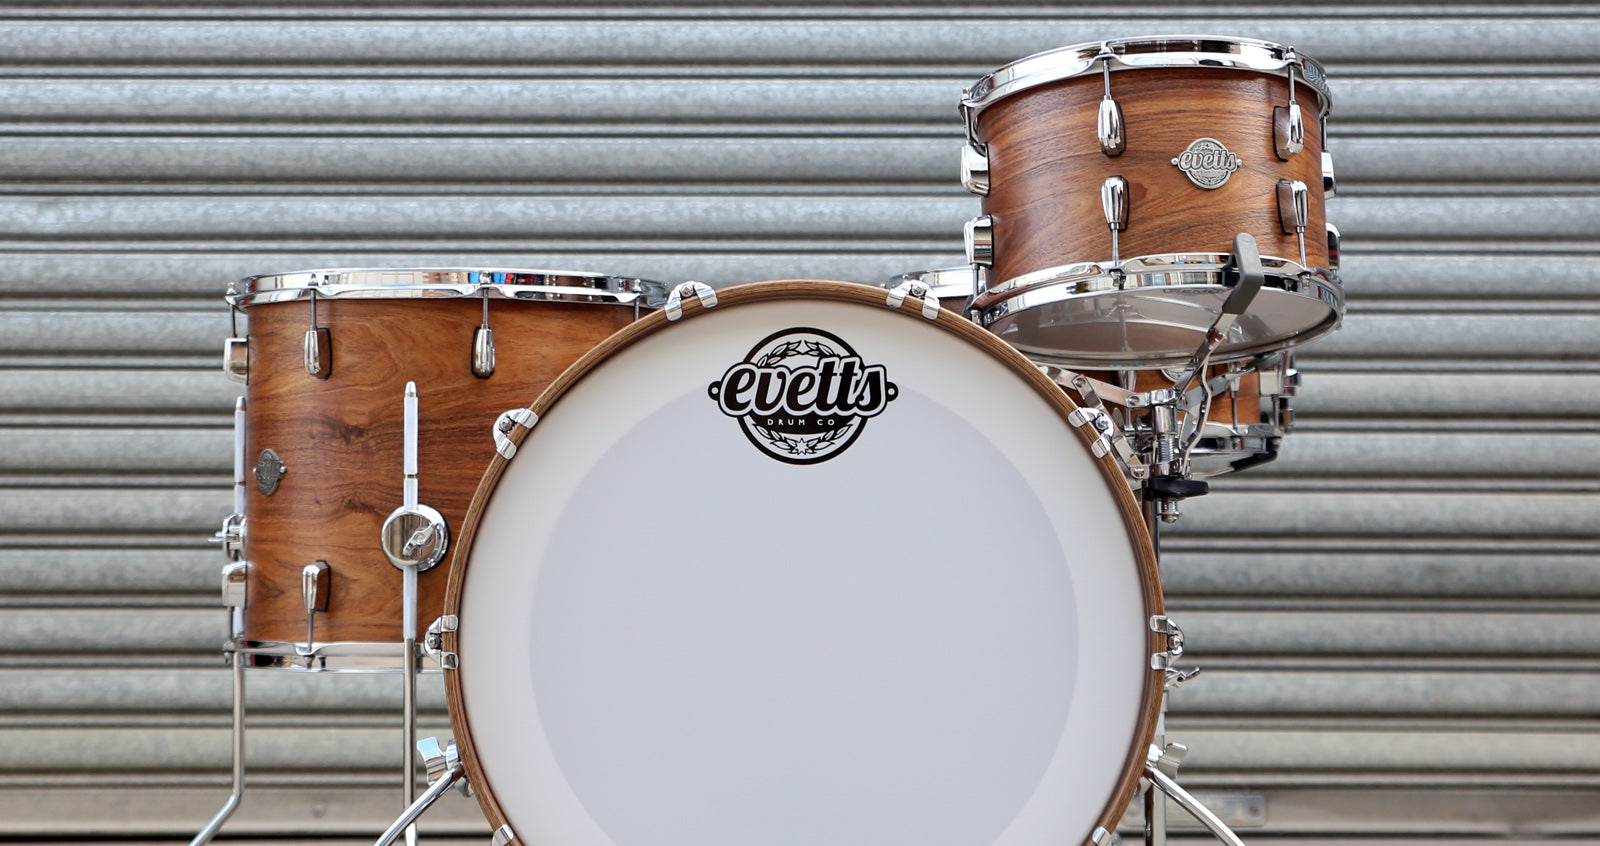 Evetts Handcrafted Bespoke Drum Kit Blackwood Shells Beavertail Lugs